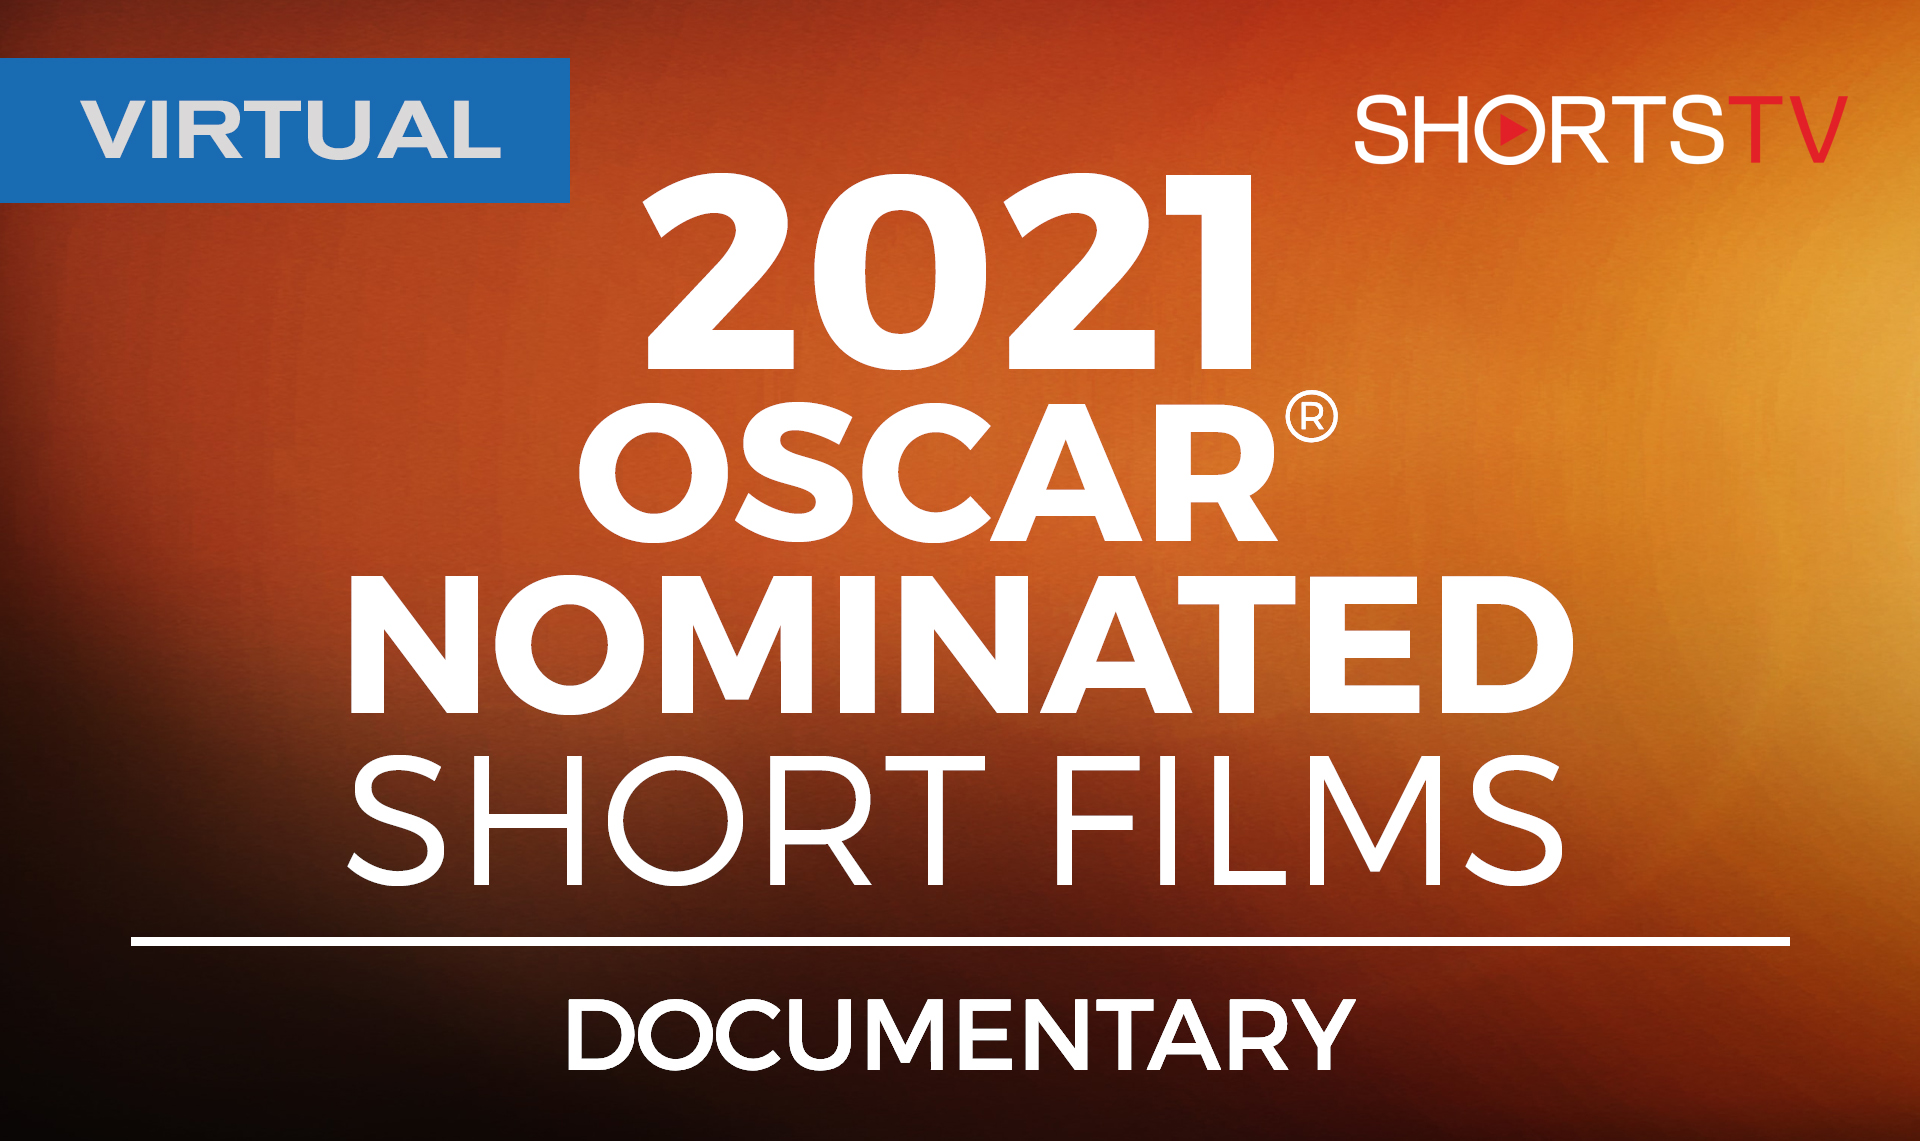 Virtual: 2021 Oscar Nominated Short Films: Documentary